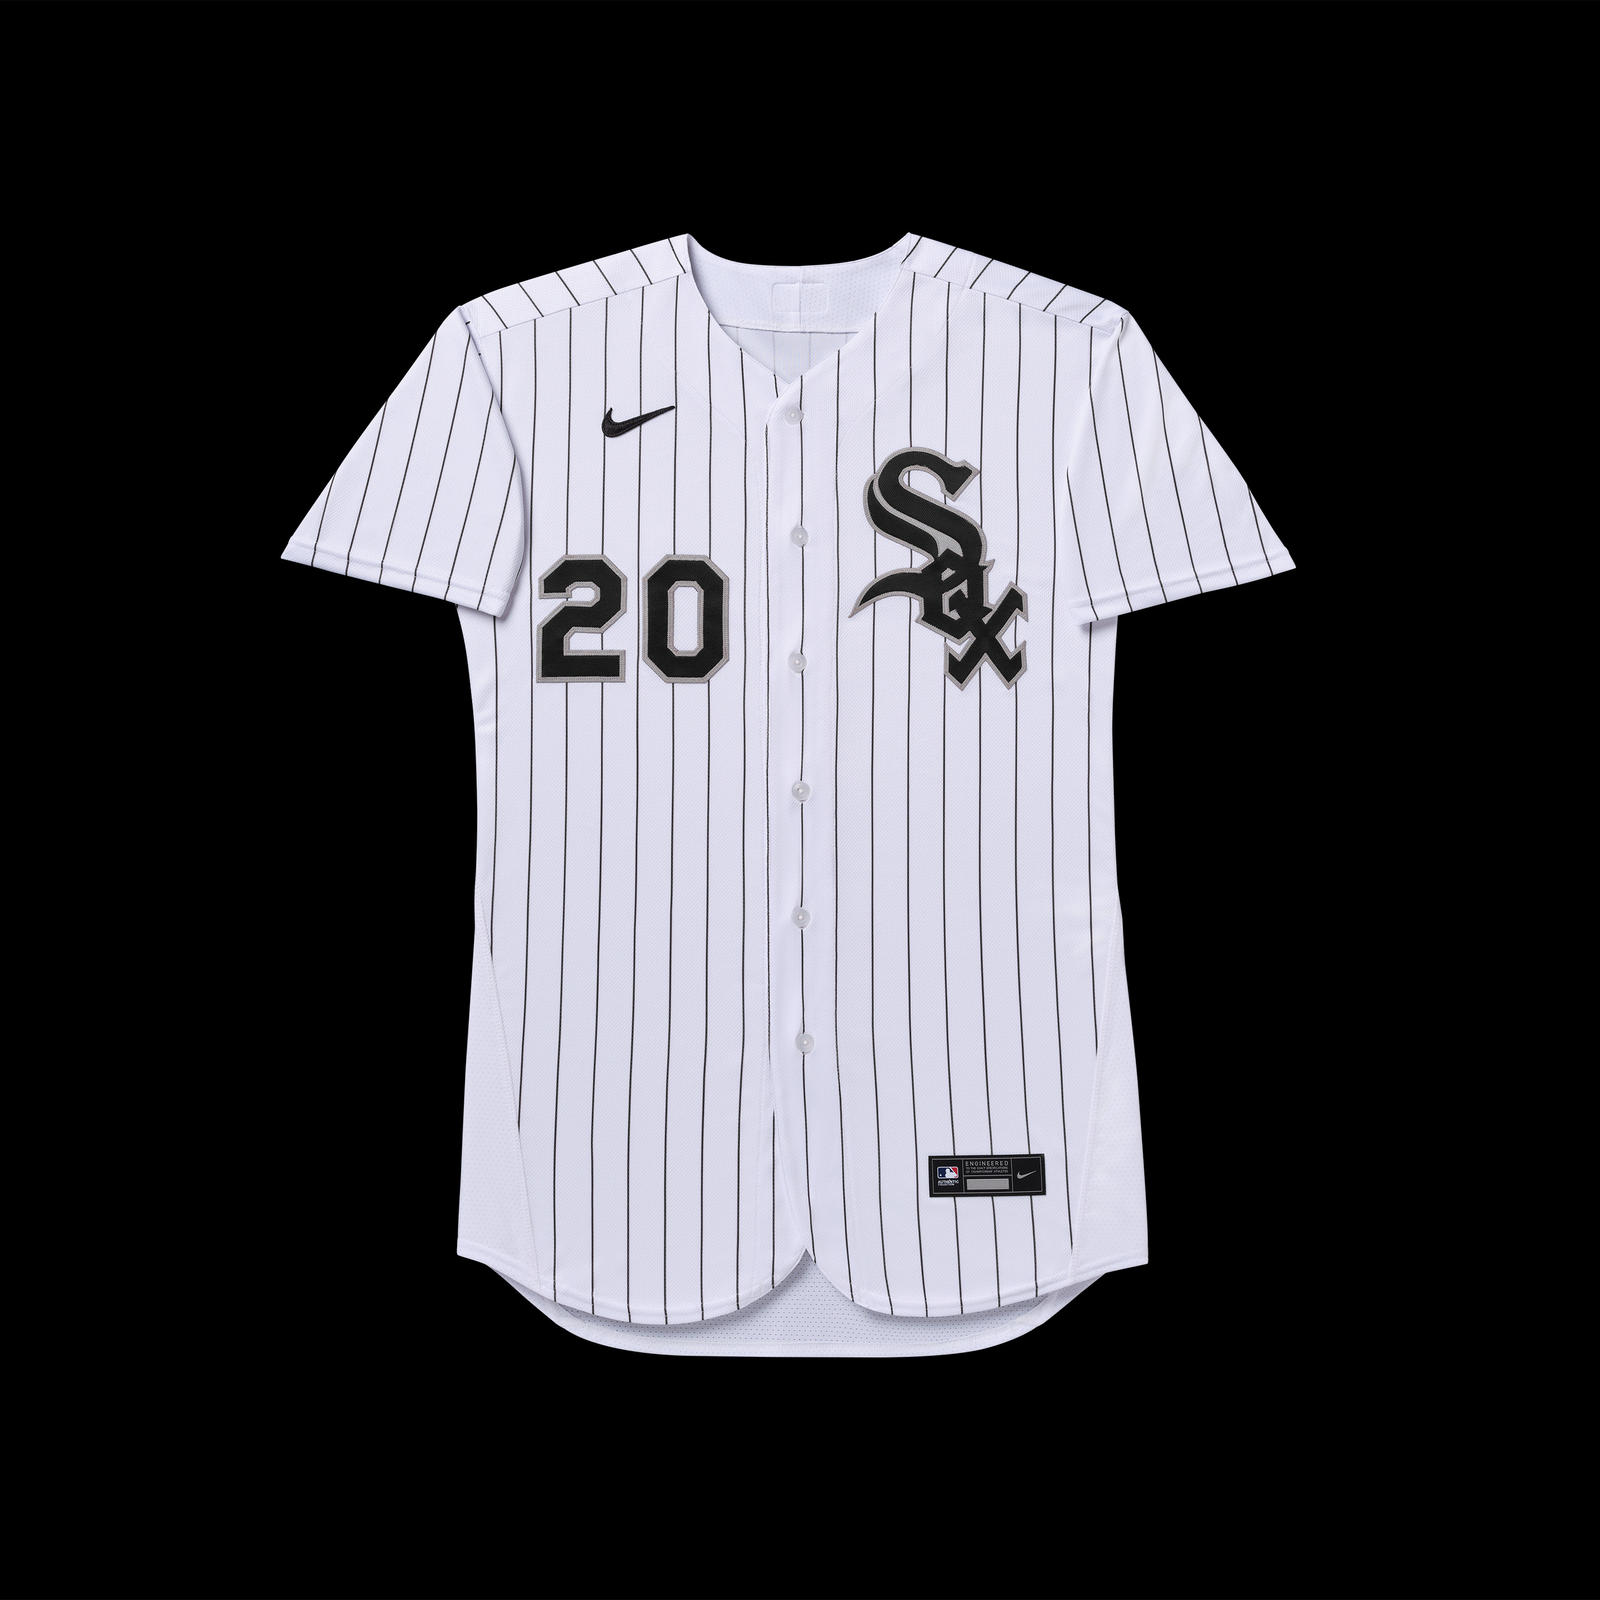 Nike x Major League Baseball Uniforms 2020 Official Images 1